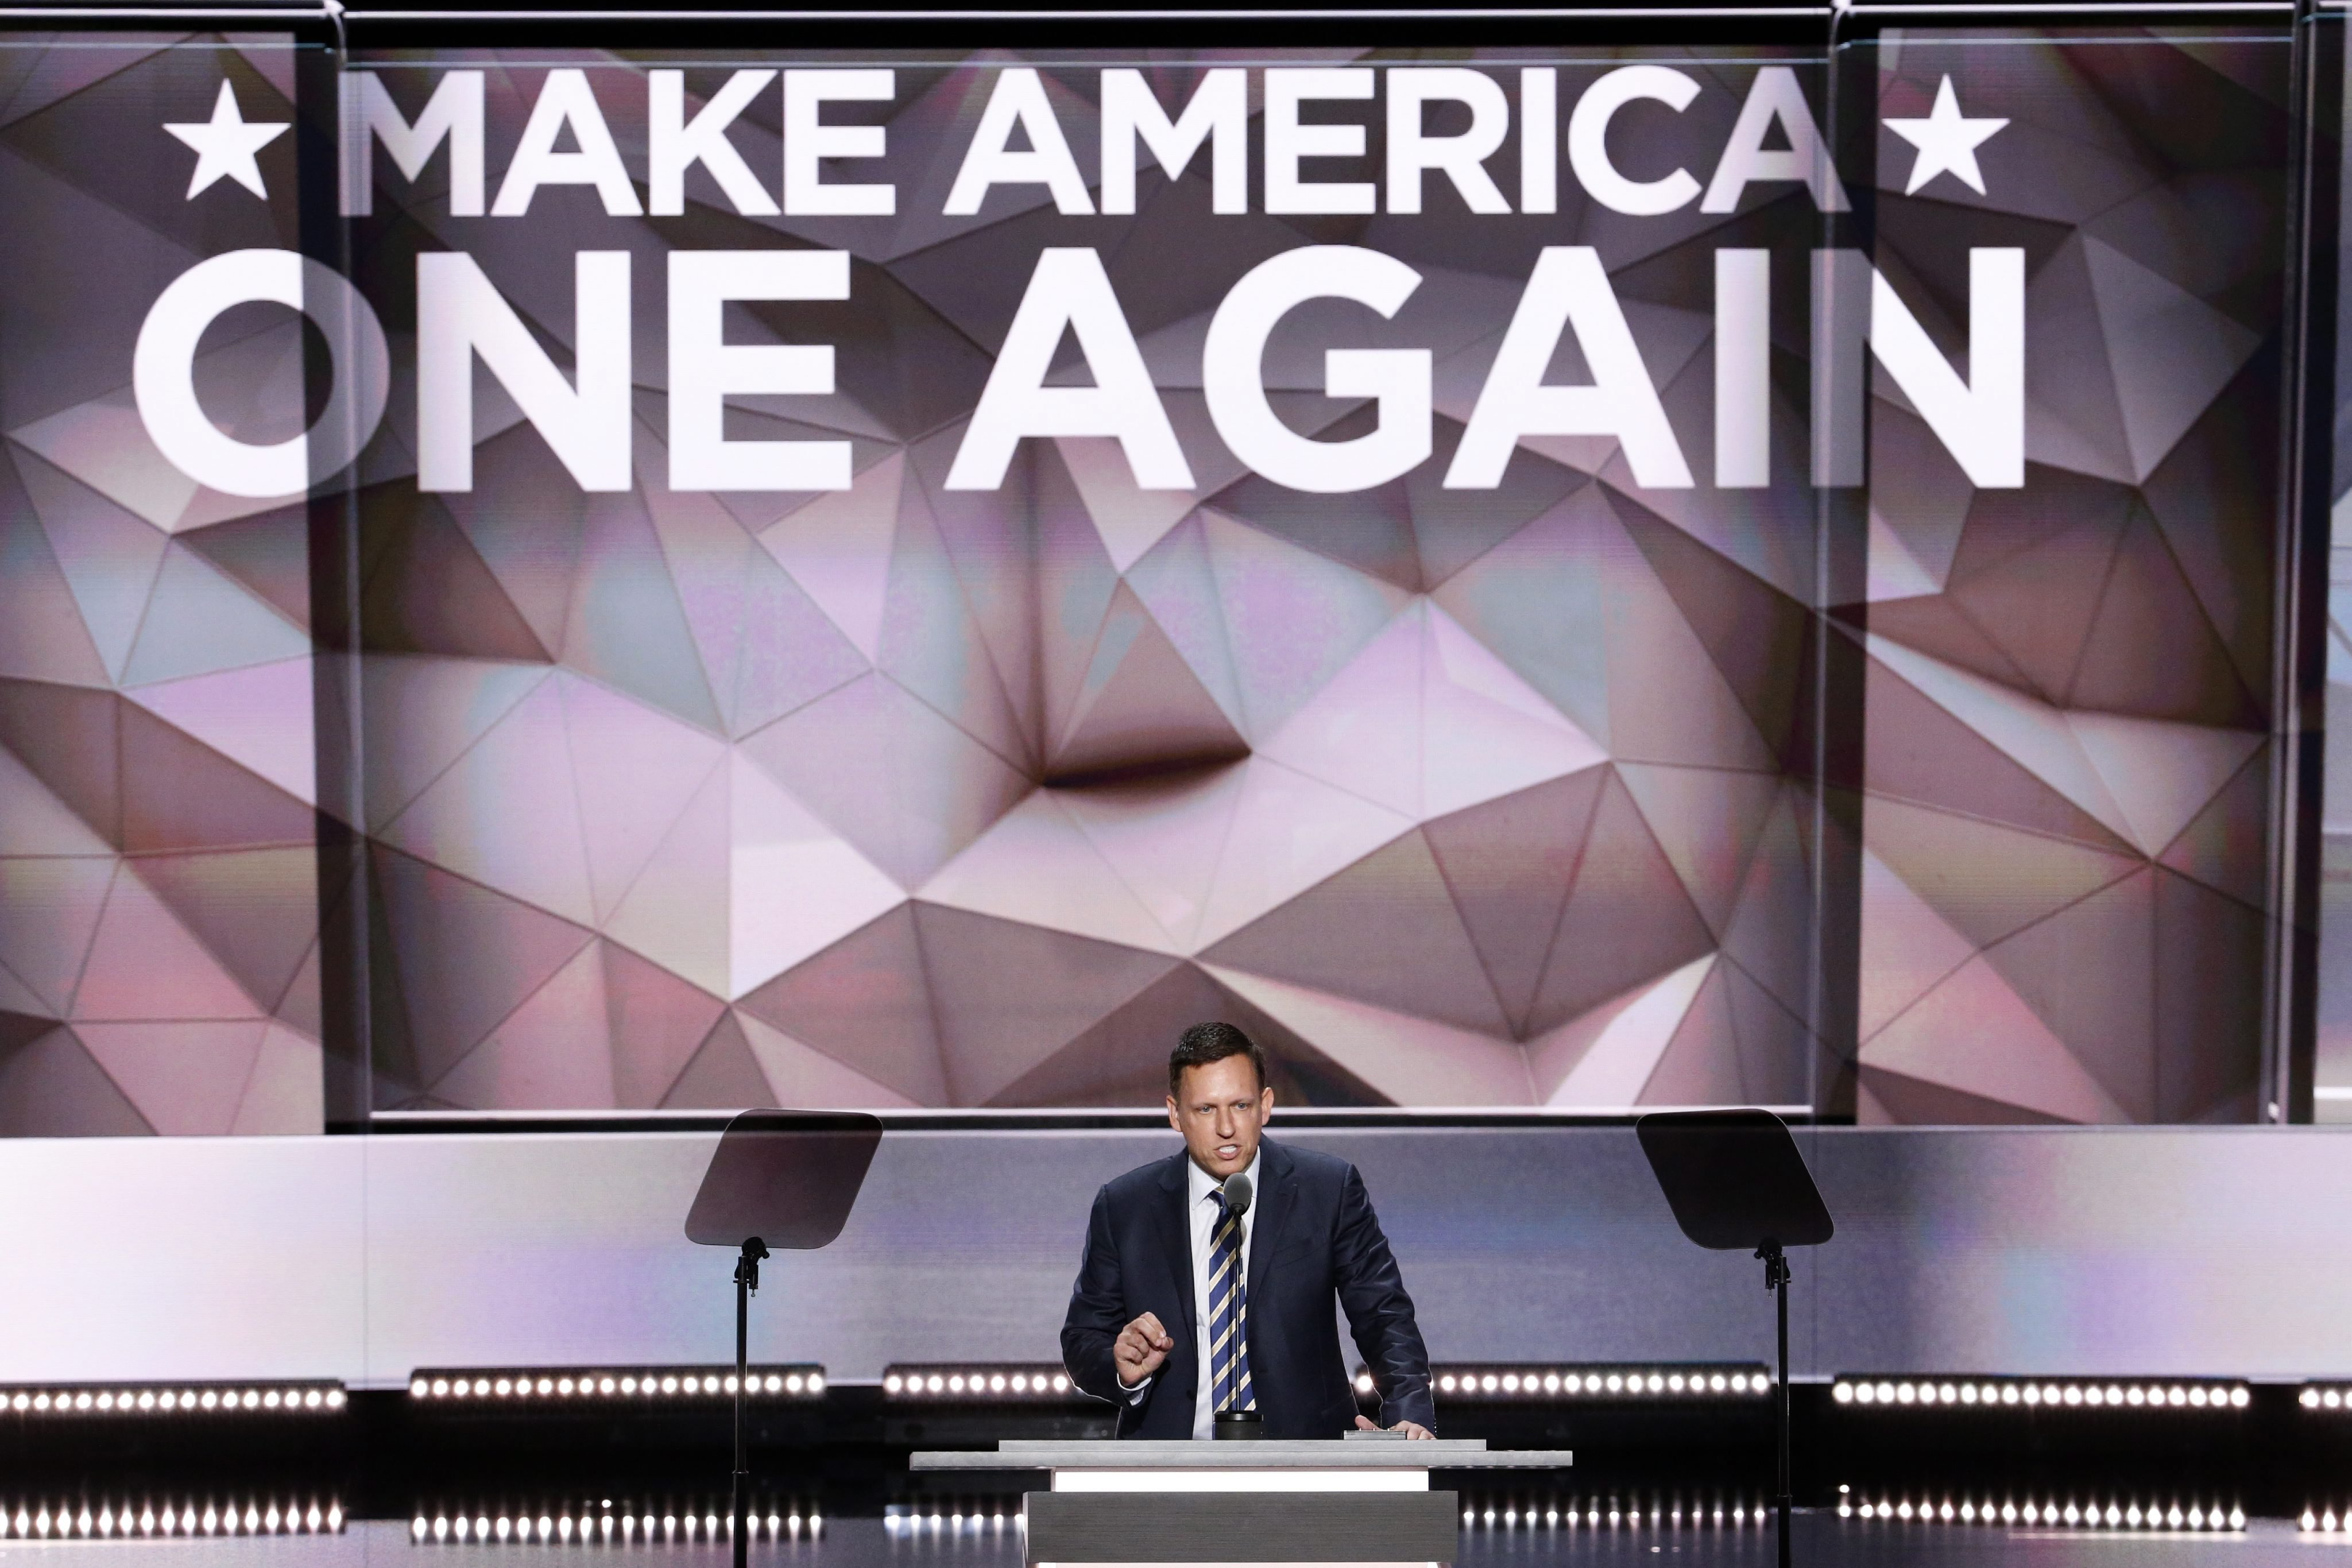 Peter Thiel delivers remarks in the Quicken Loans Arena on the final day of the 2016 Republican National Convention in Cleveland on Thursday, July 21, 2016.